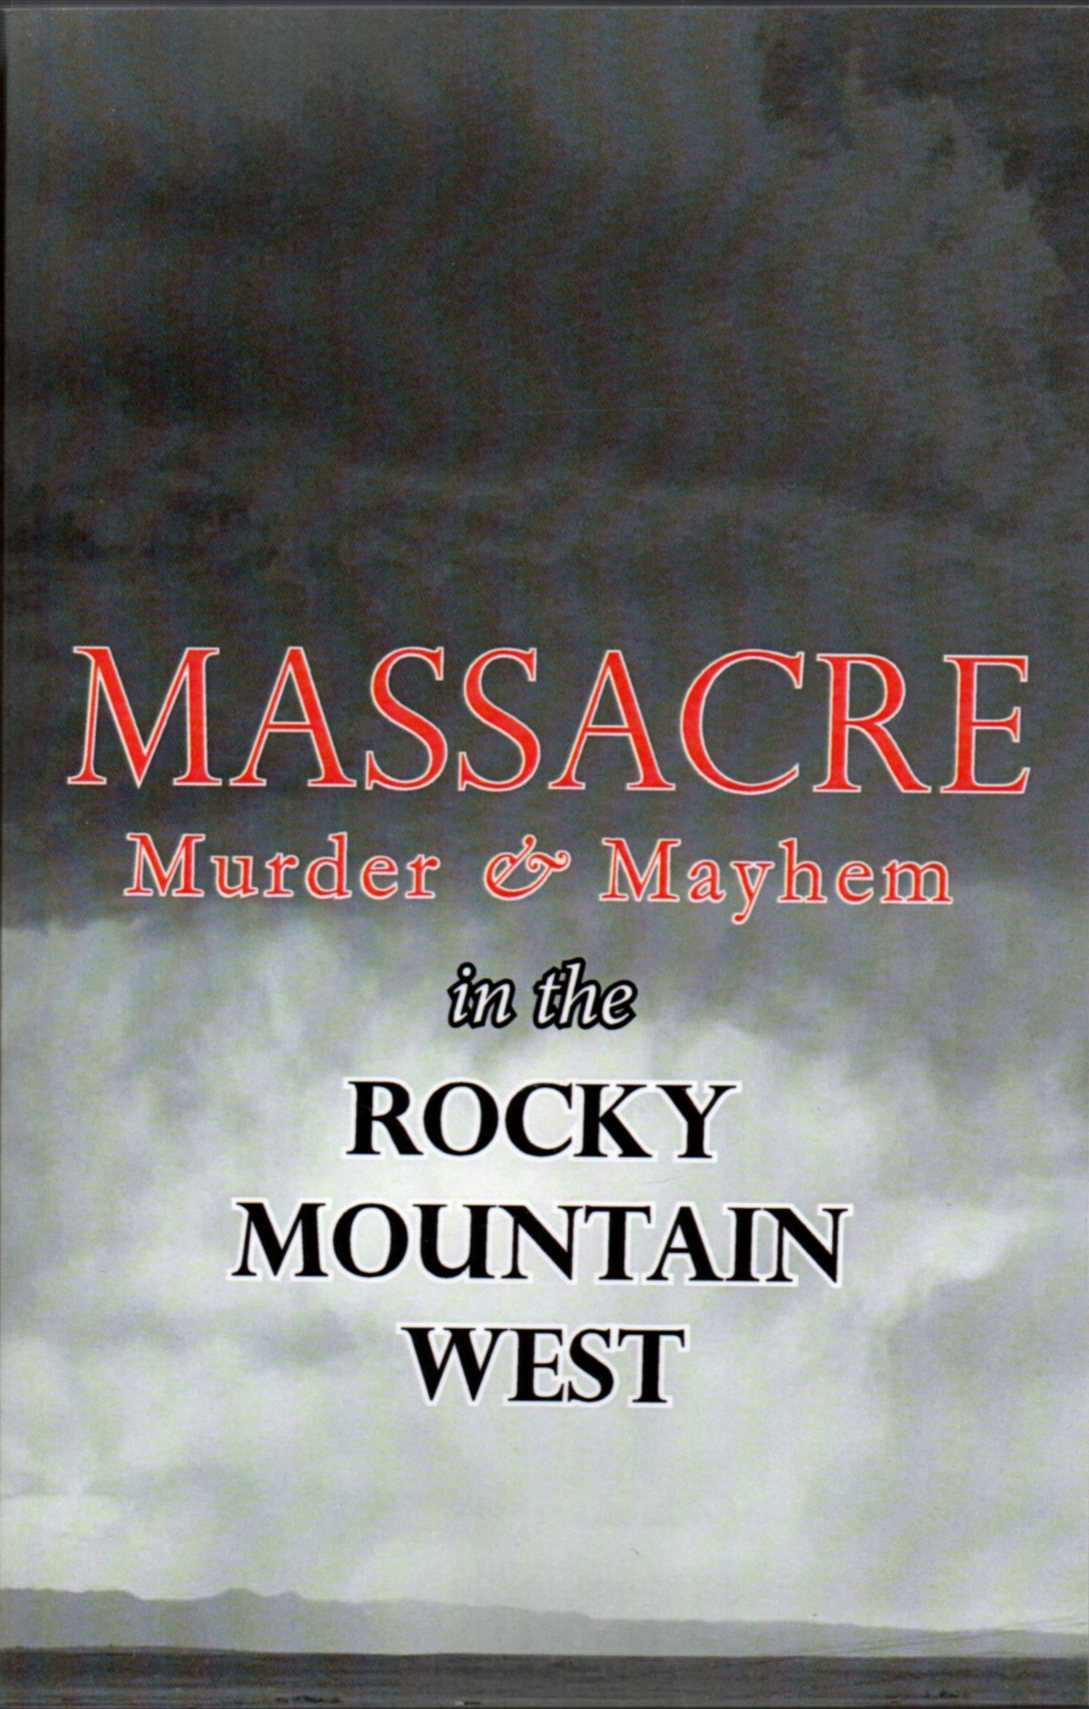 Image for Massacre, Murder & Mayhem in the Pikes Peak Region